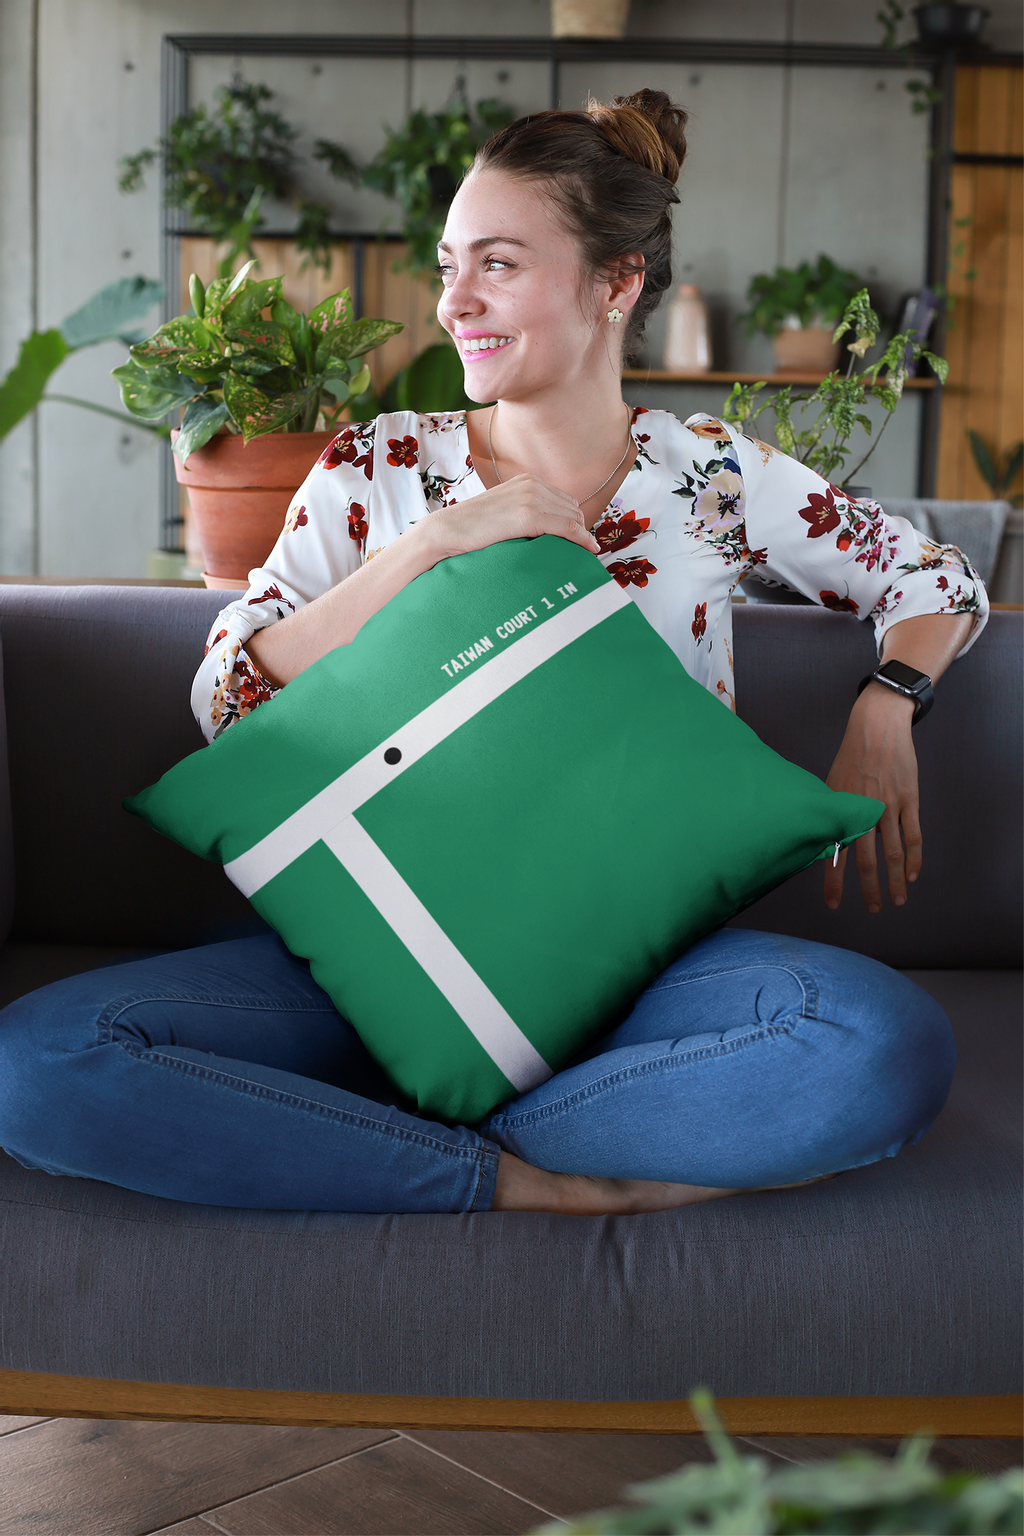 mockup-of-a-smiling-woman-holding-a-pillow-at-a-lounge-23611.png